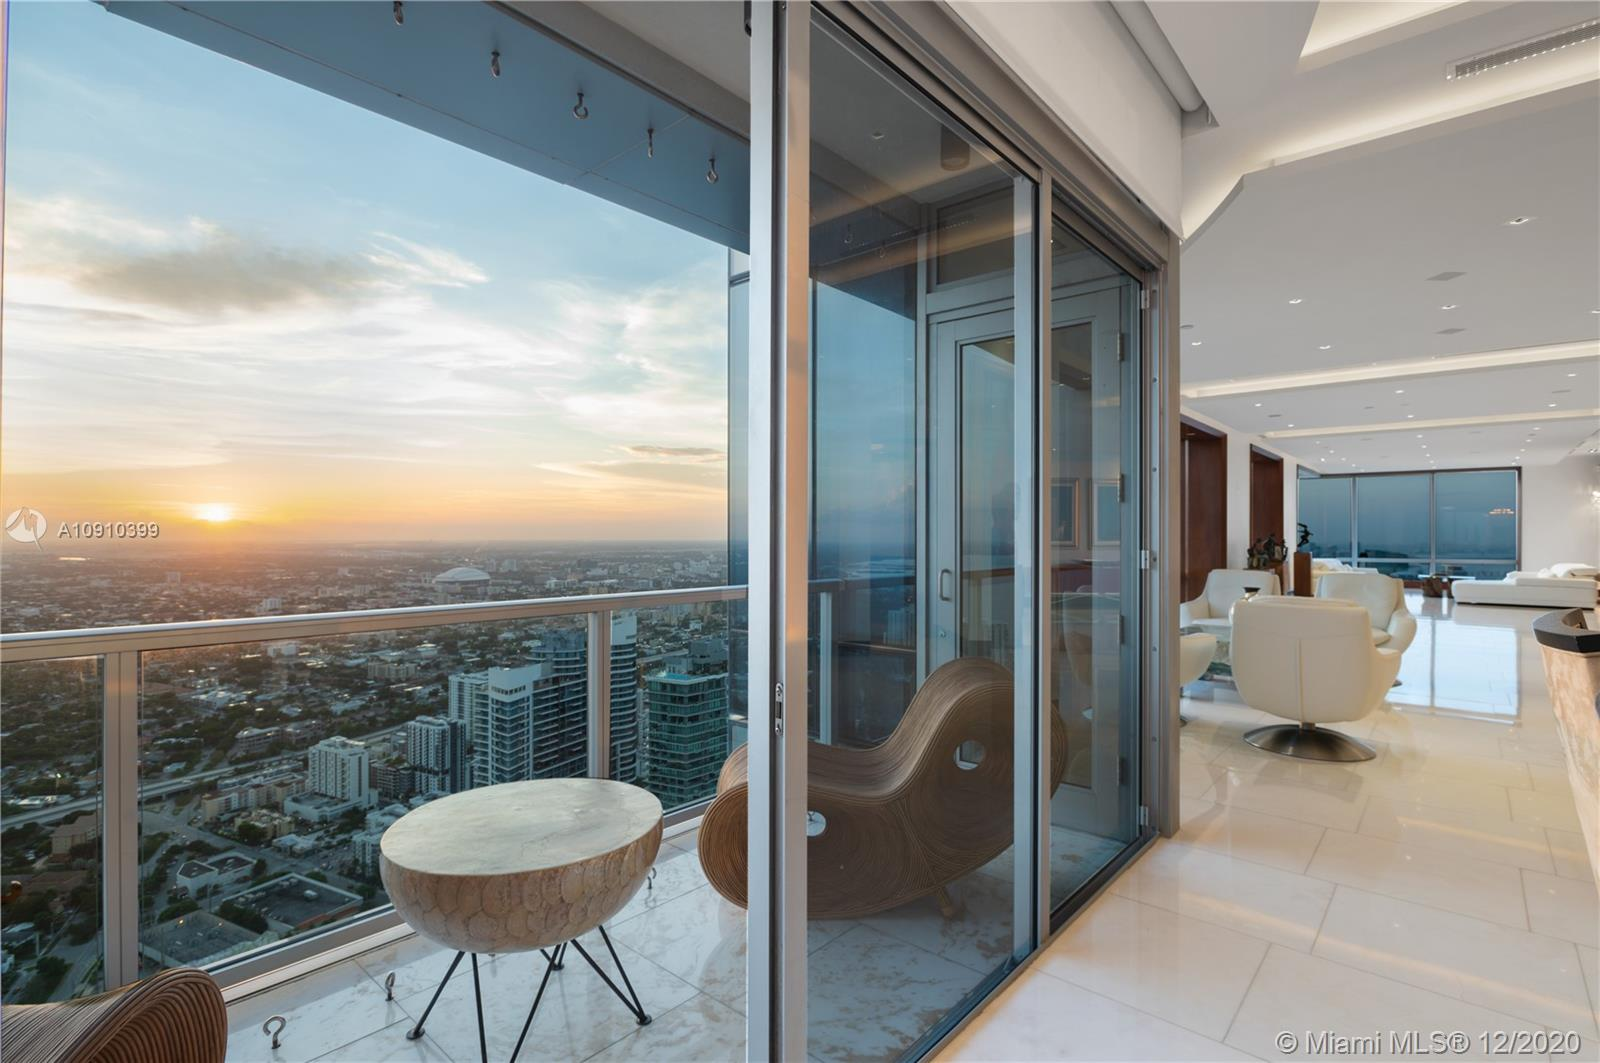 On Jan 29, this 70th-floor penthouse will be sold at Luxury AUCTION® WITHOUT RESERVE! List price for REFERENCE ONLY. Offered with Platinum Luxury Auctions. Welcome to exquisite living! From corner to corner of the Four Seasons, this expansive unit offers 180 degree vistas of Key Biscayne, Biscayne Bay, & the lights of the Magic City; captivating views from anywhere in the unit, magnificent sunsets! 3 units combined create 6,000+/- SF of palatial living. Lapis Lazuli Snaidero kitchen w/ Miele appliances; floating Onyx bar w/ temp-controlled wine storage; 2 balconies; oversized master, his/hers walk-in custom closets; $1 million+ in custom woodwork. 4 parking spaces, 6 Equinox memberships & all the 5-star amenities & world-class service of the iconic Four Seasons. Marketed by Techrin Hijazi.